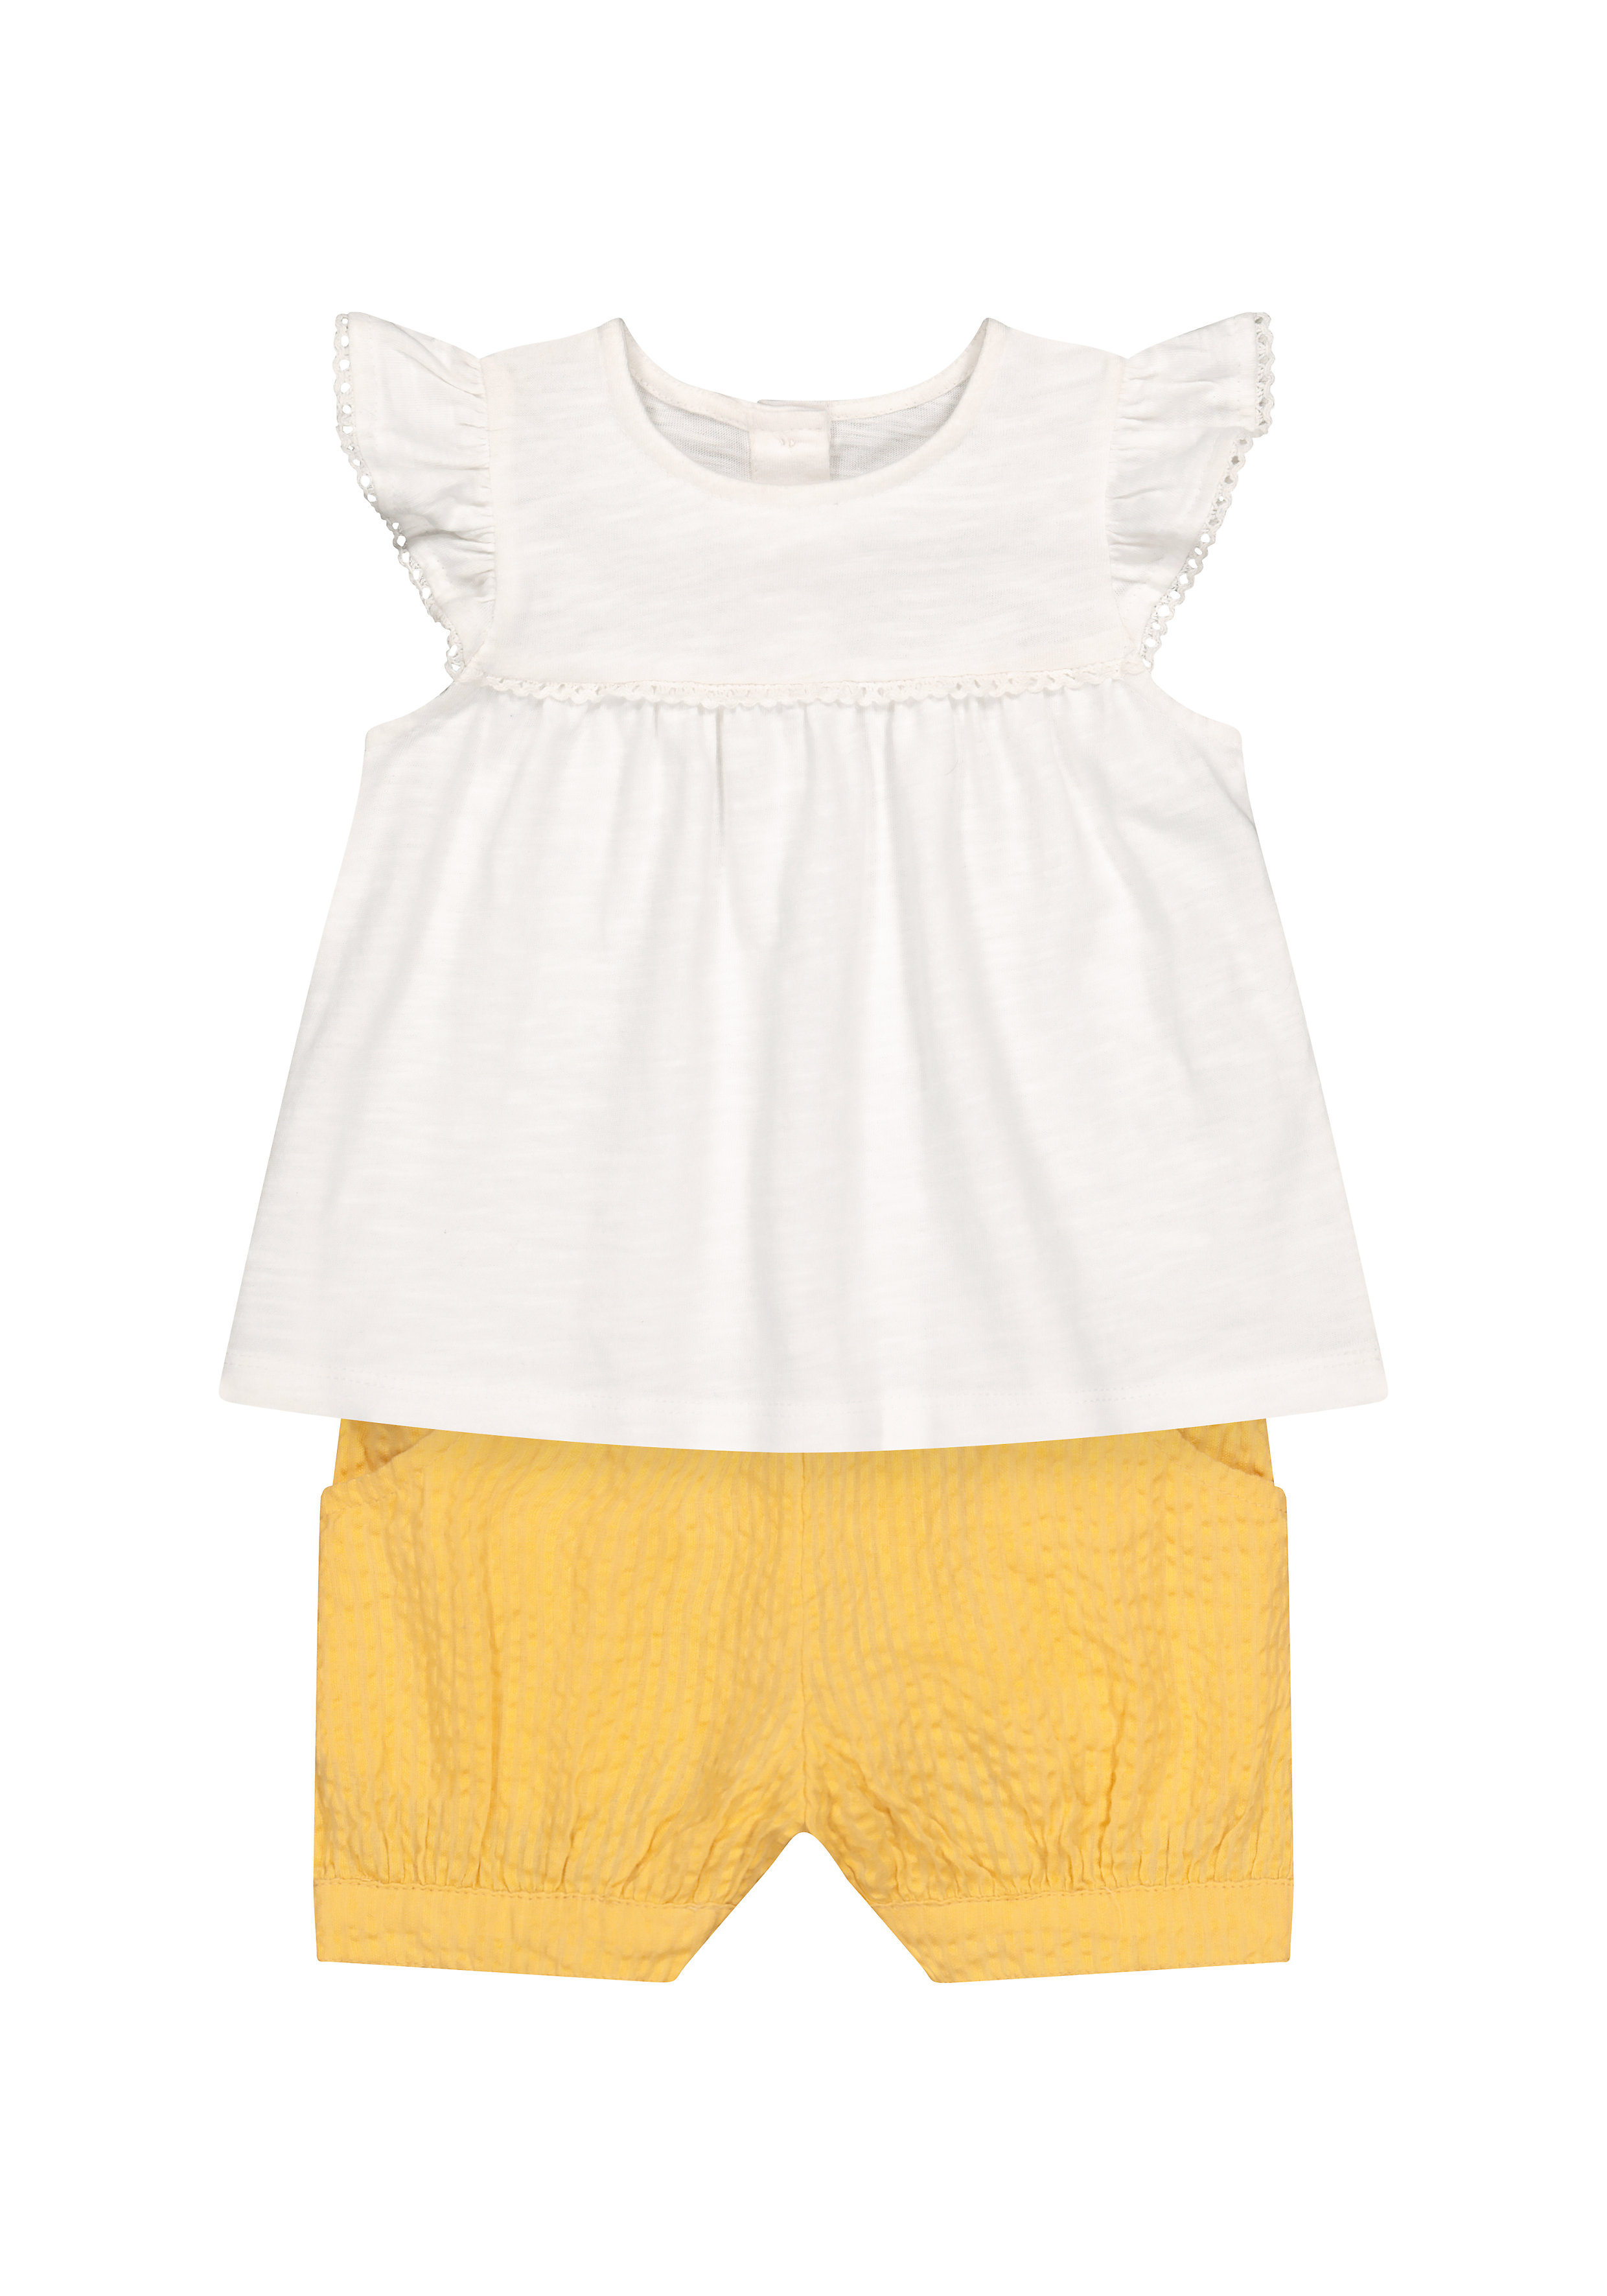 Mothercare | Girls Half Sleeves Lace Details Top And Shorts Set - White Yellow